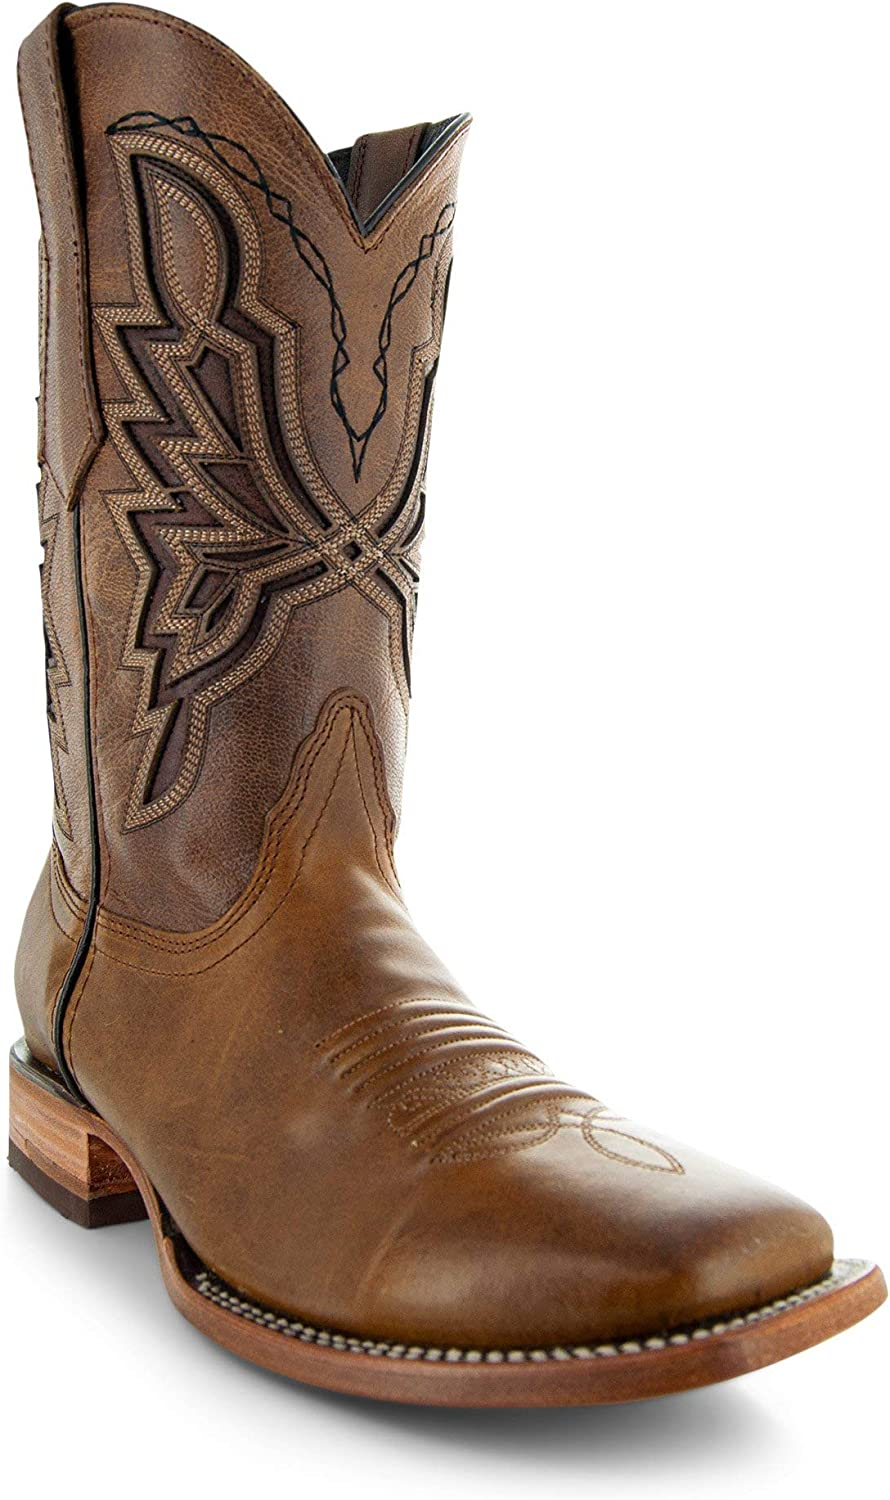 Soto Boots Men's Broad H50028 Square Import Same day shipping Cowboy Toe